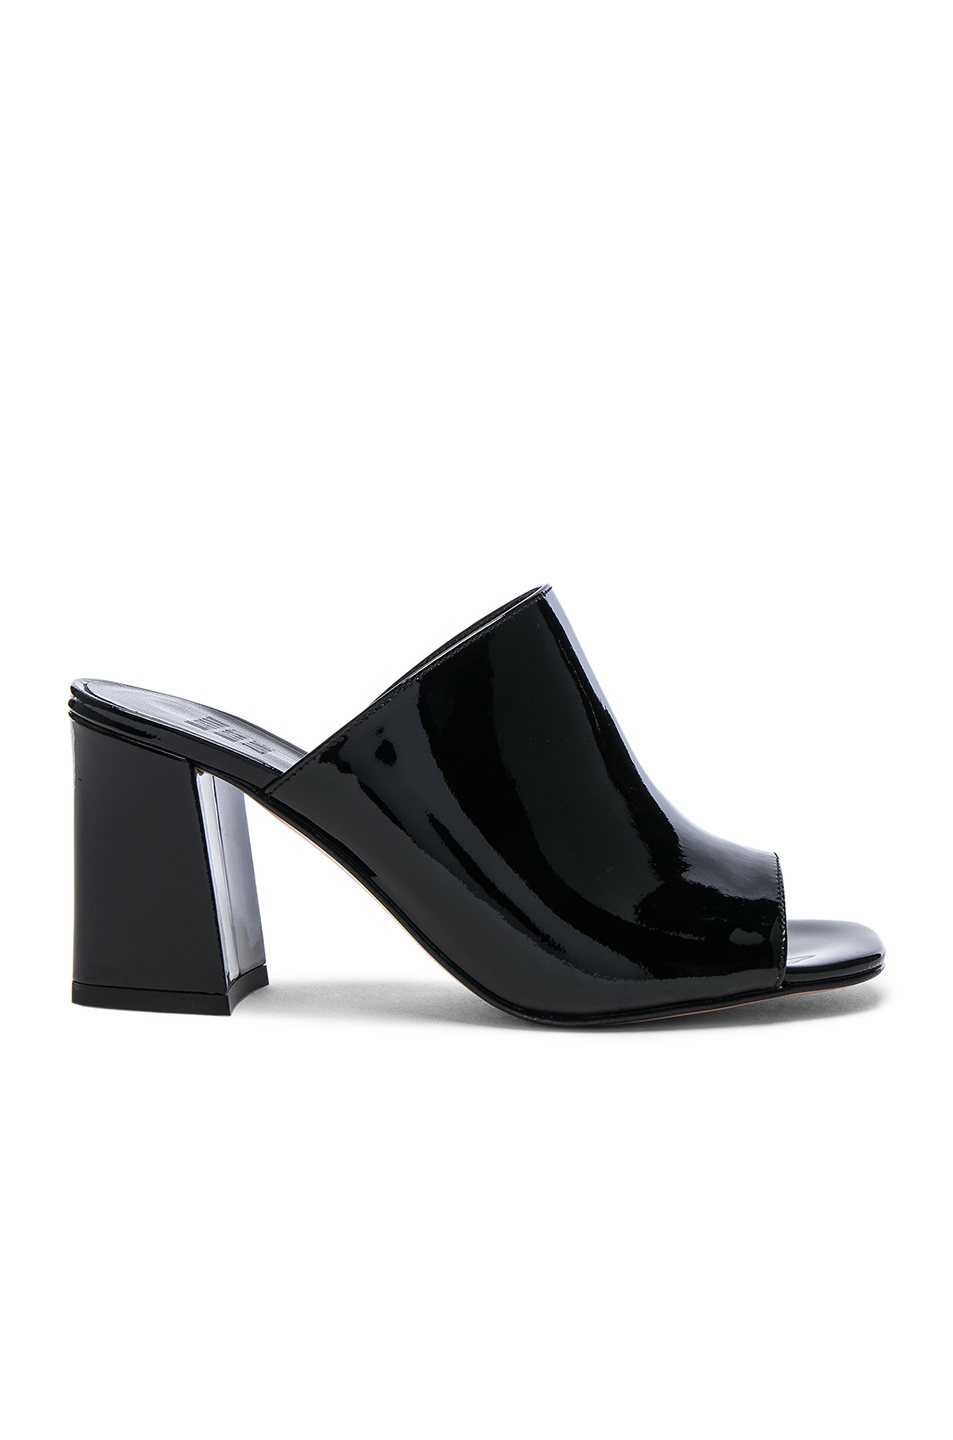 Maryam Nassir Zadeh Patent Leather Penelope Mules in Black